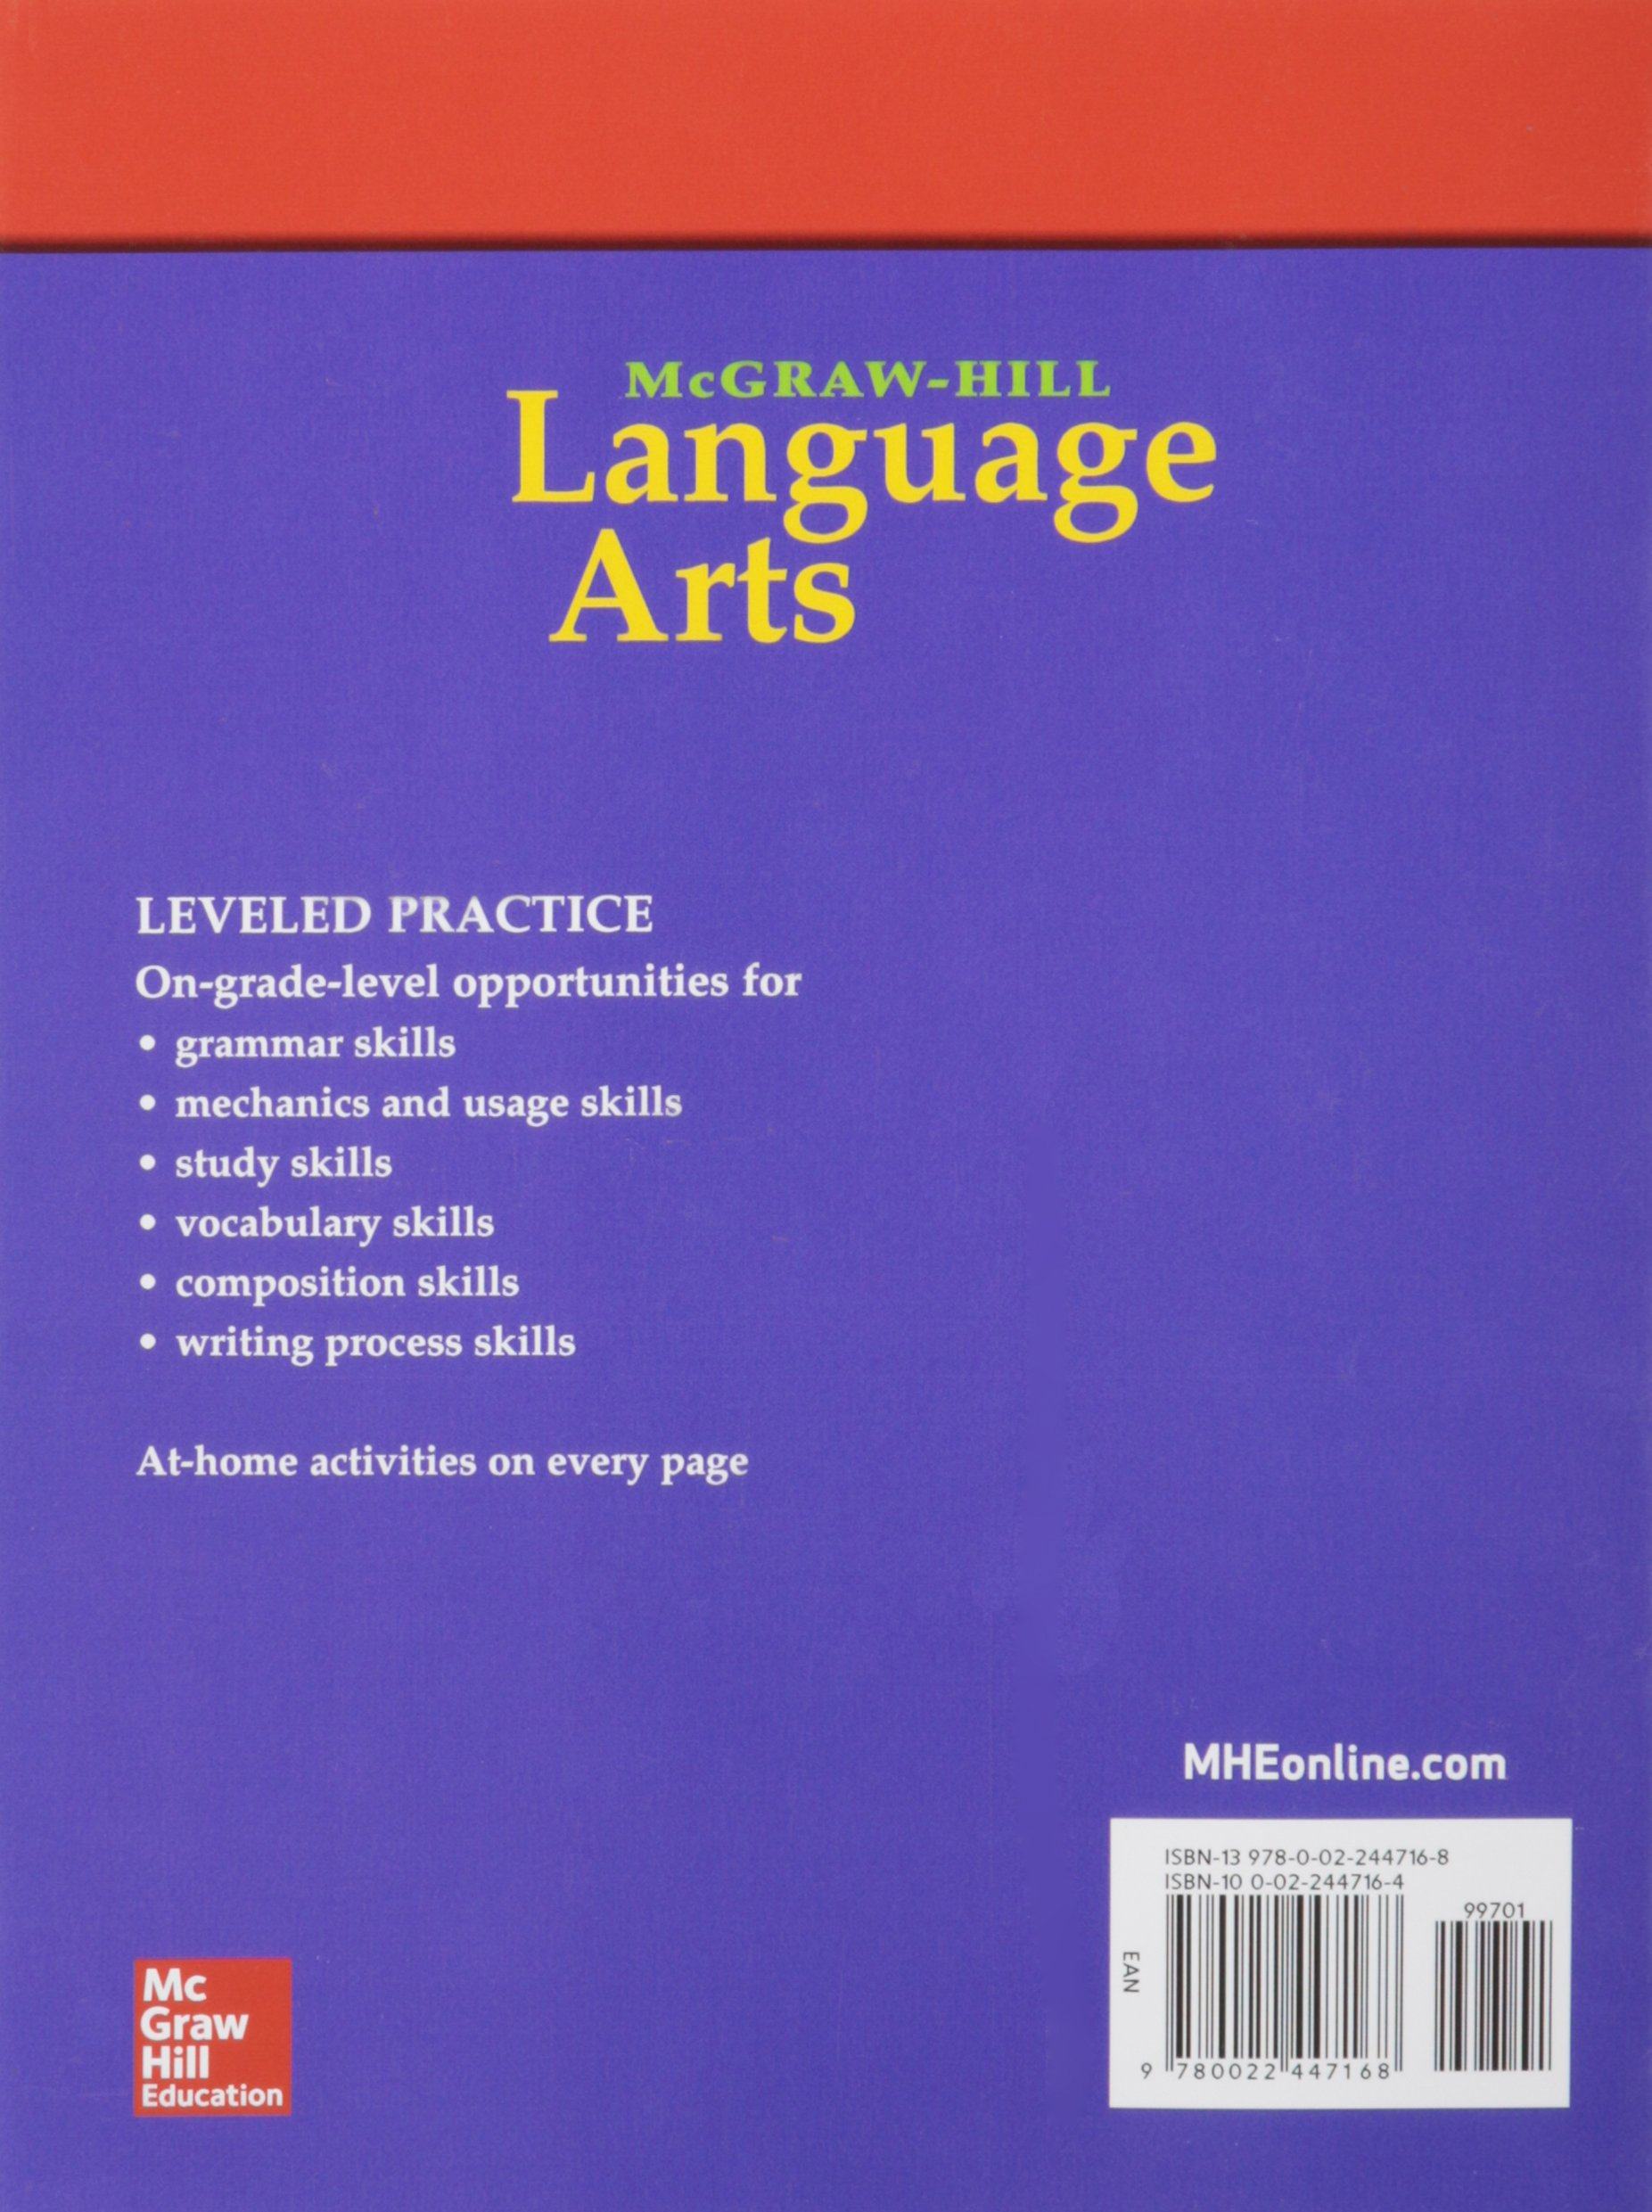 Mcgraw hill language arts grade 4 practice workbook older mcgraw hill language arts grade 4 practice workbook older elementary language arts mcgraw hill education 9780022447168 amazon books fandeluxe Image collections